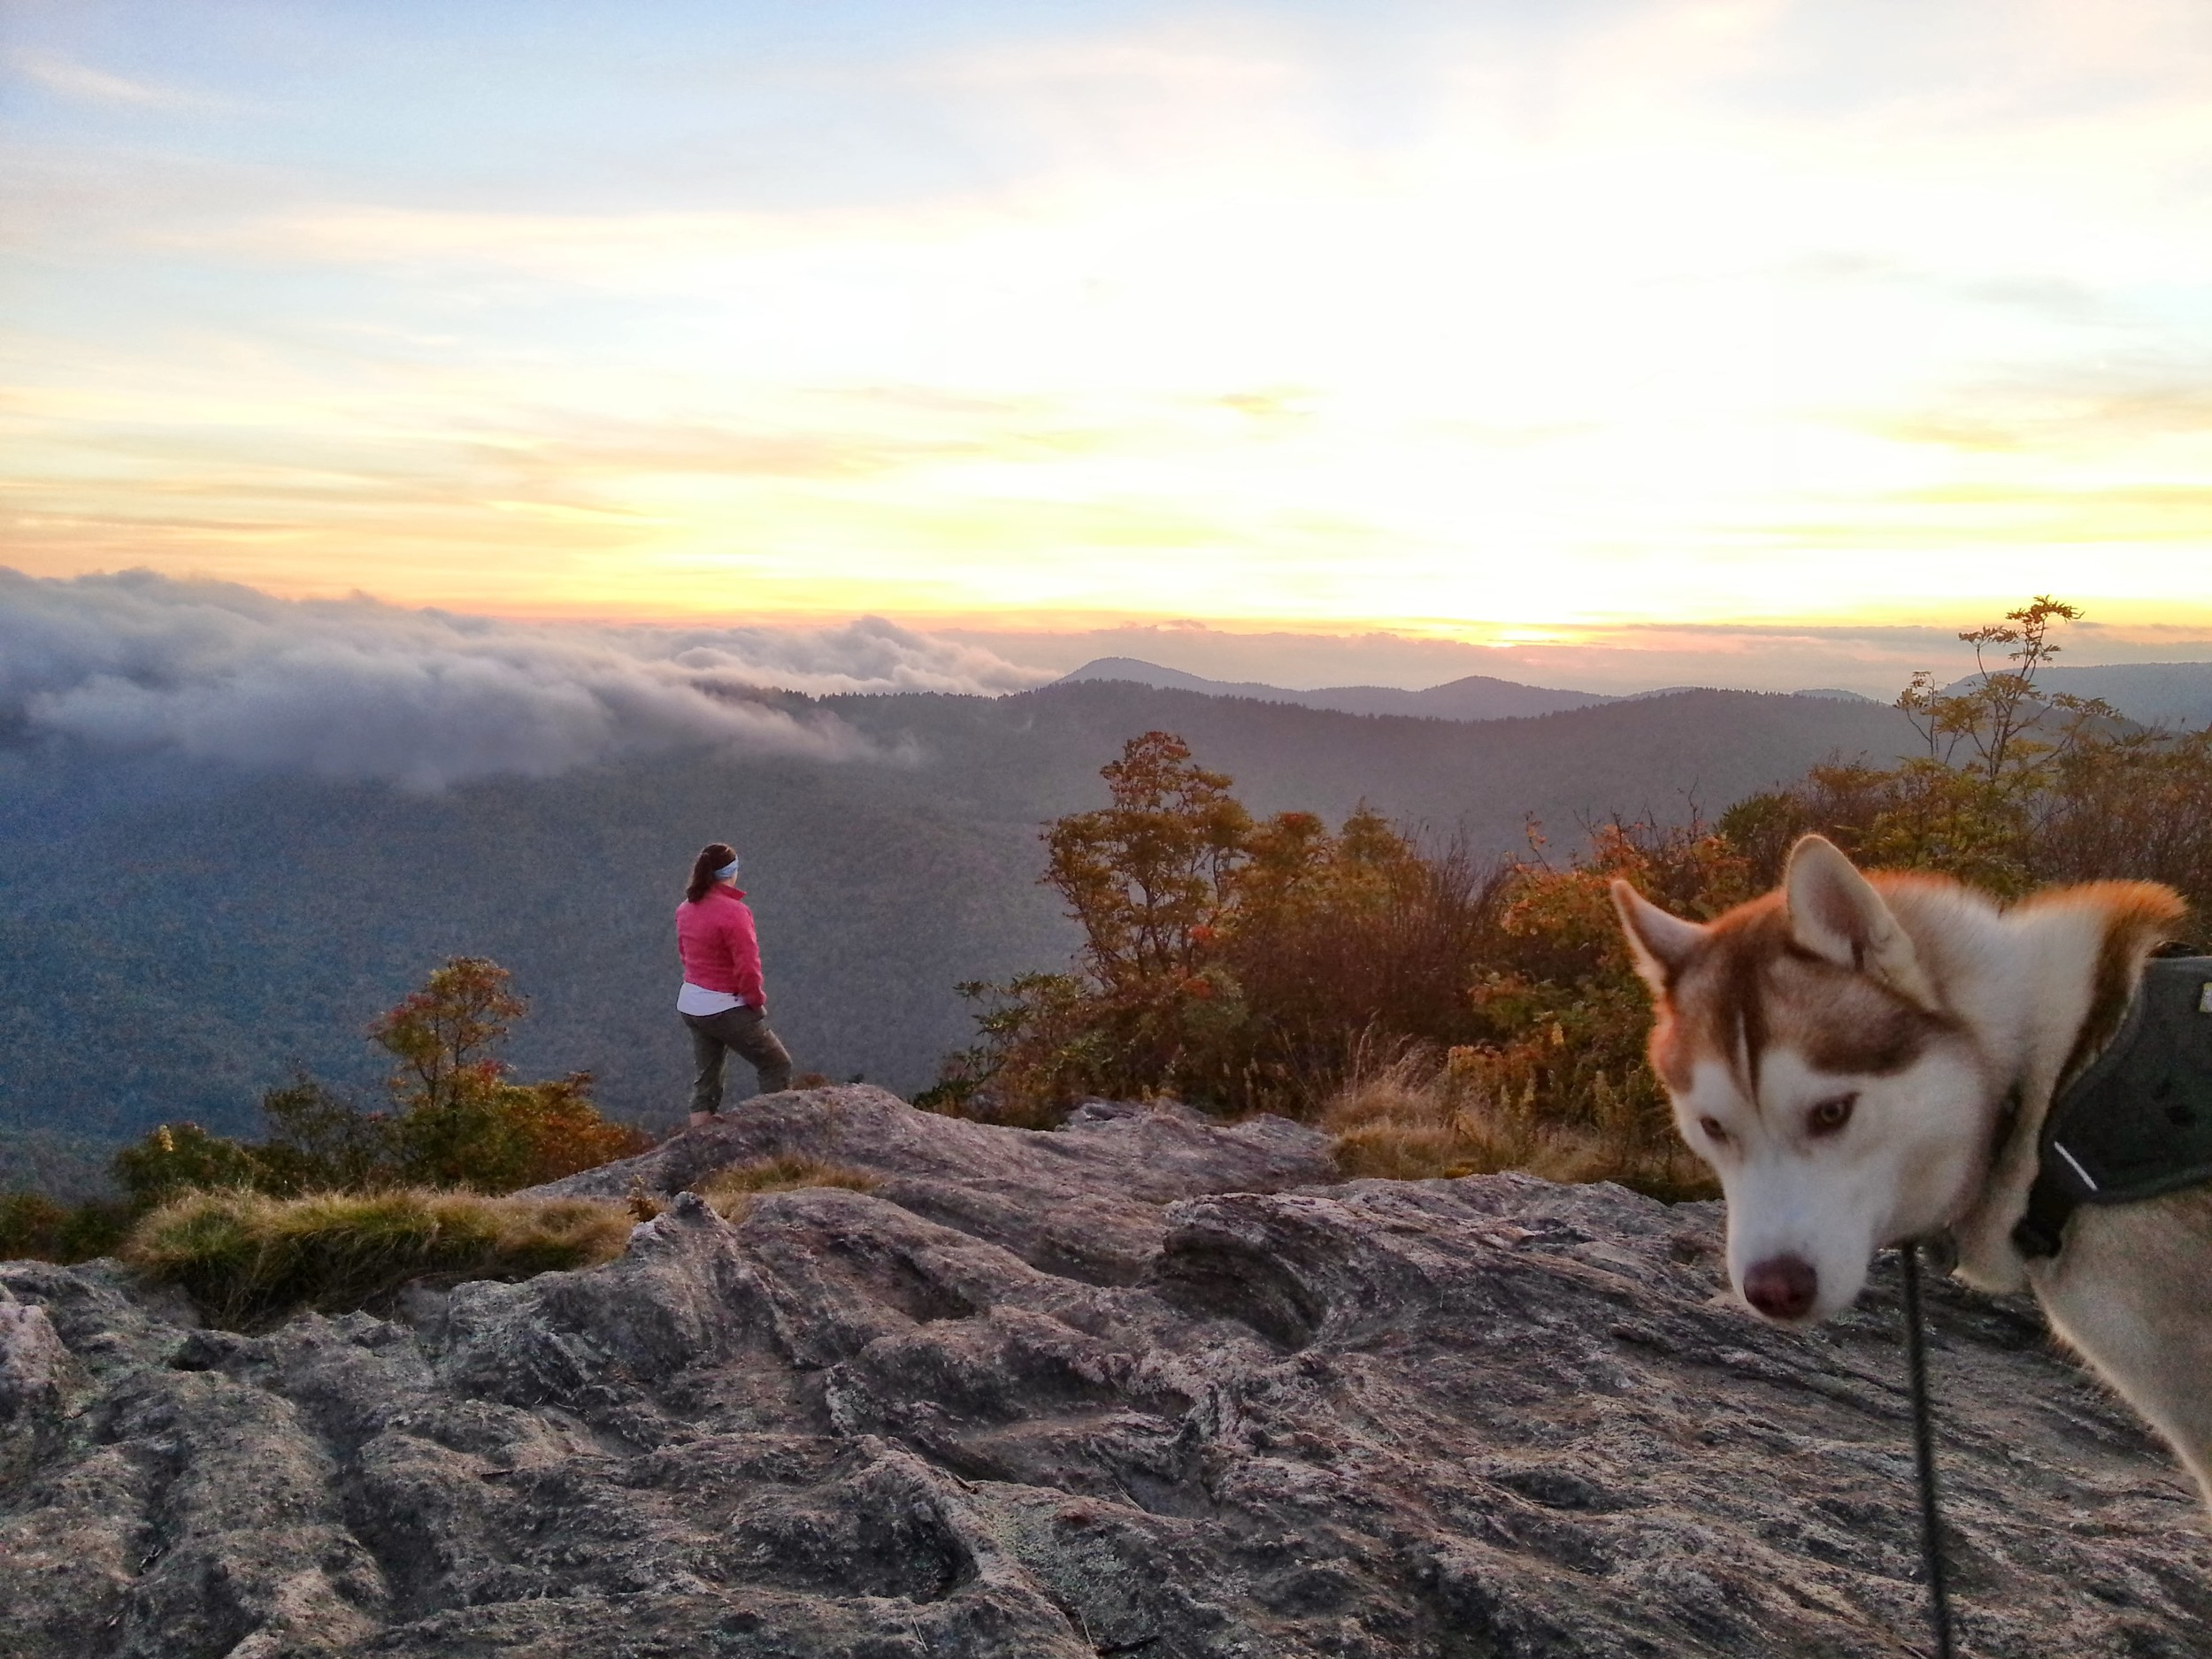 But he was not pleased when I went off to check out the view on my own (ultimate photobomb dog)